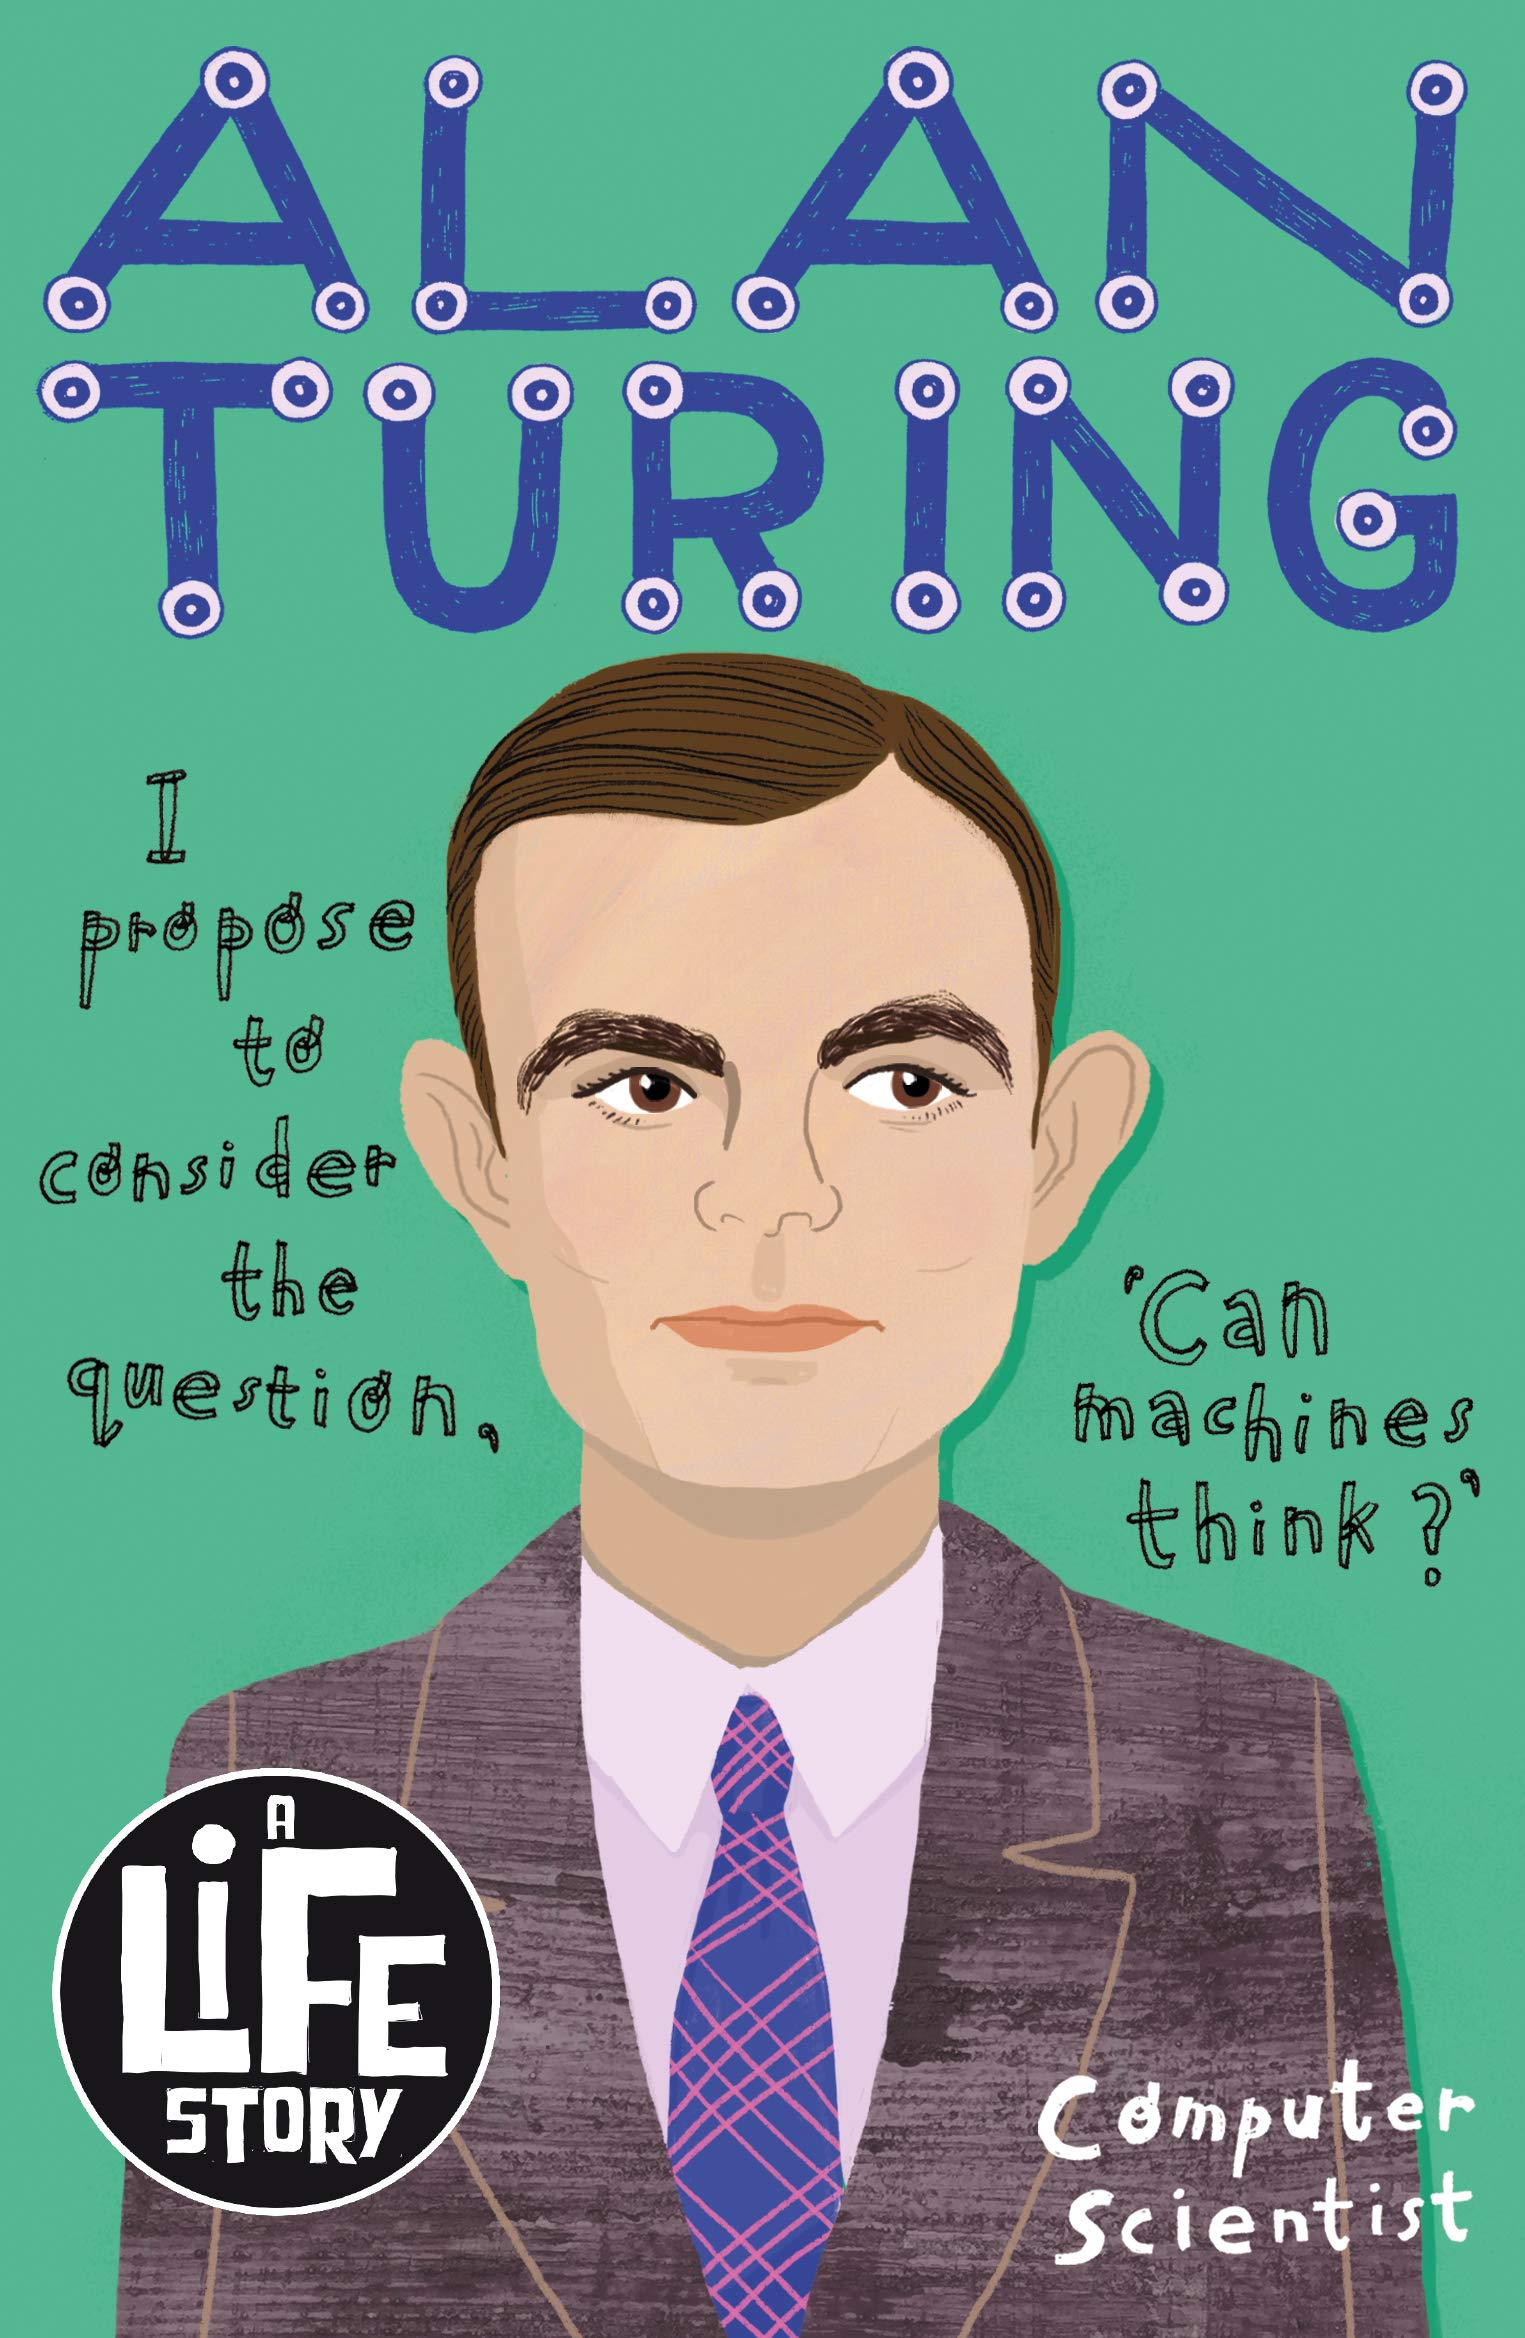 Alan Turing (A Life Story): Amazon.co.uk: Nadin, Joanna: 9781407193199:  Books